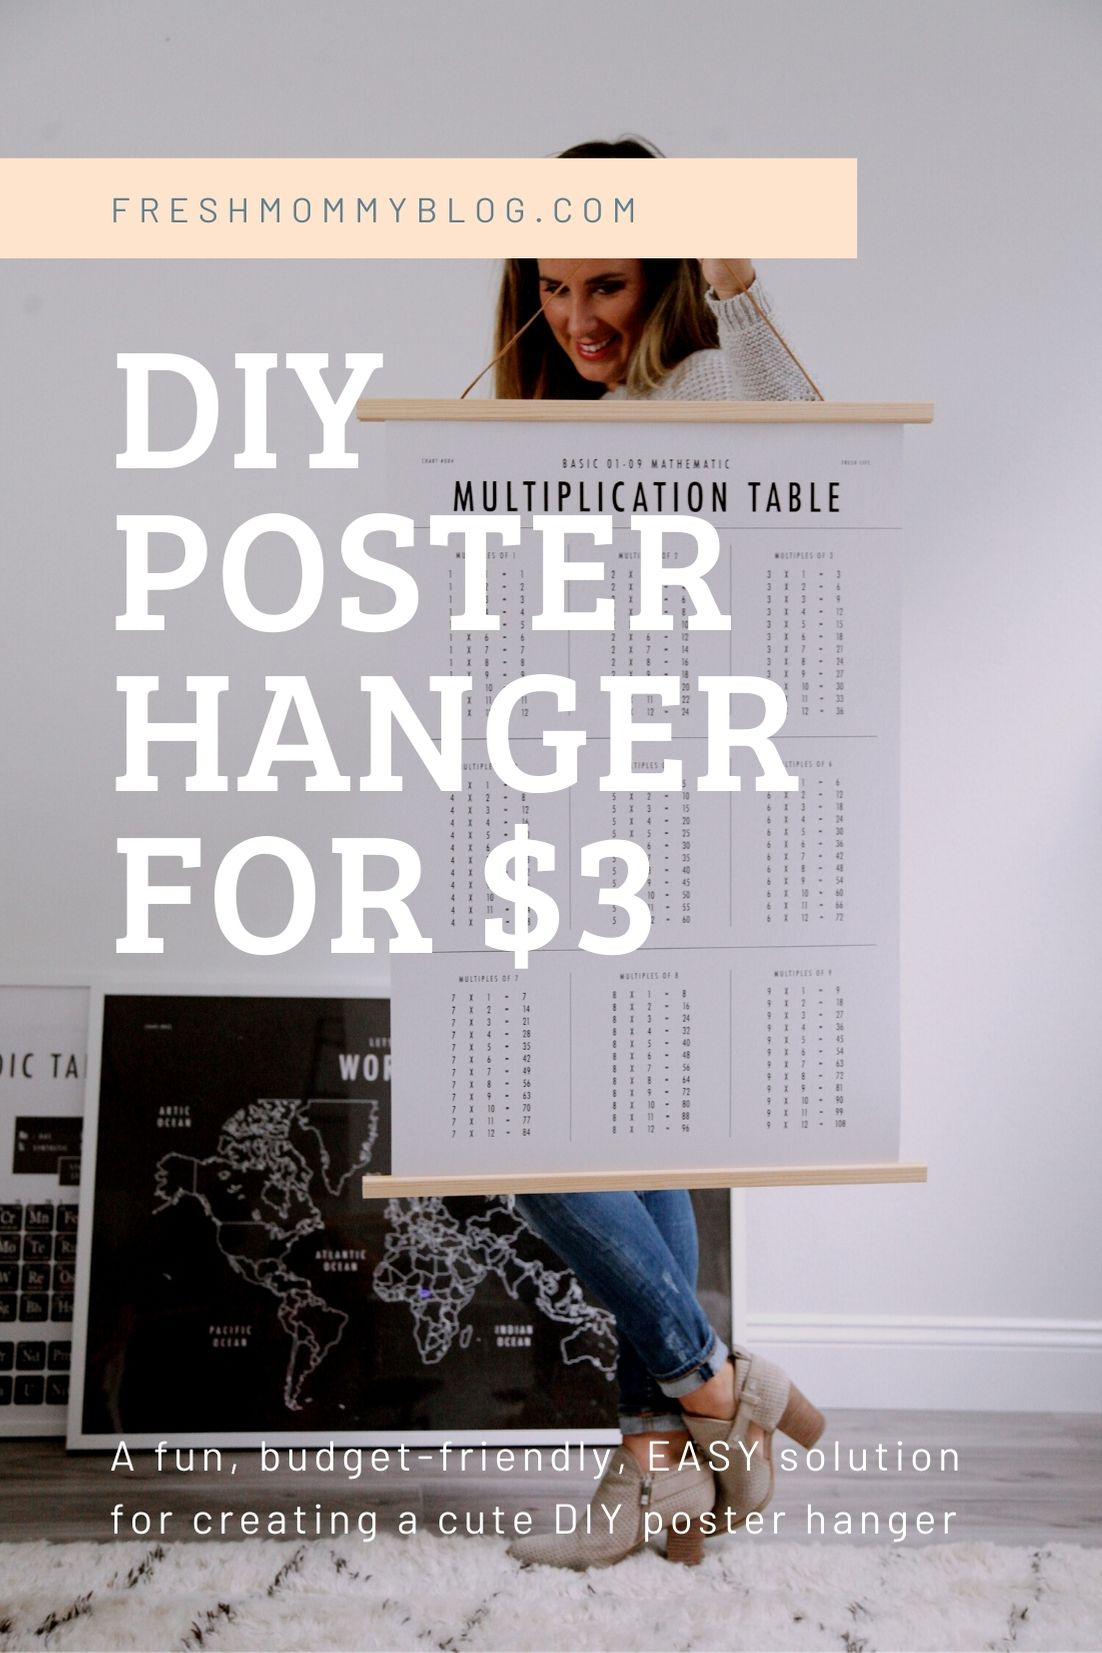 Click through for a fun, EASY DIY poster hanger tutorial. You can make your own  DIY poster hanger for $3 in just a few short minutes!   DIY Poster Hanger by popular Florida DIY blog, Fresh Mommy Blog: Pinterest image of Tabitha Blue holding a DIY poster hanger.